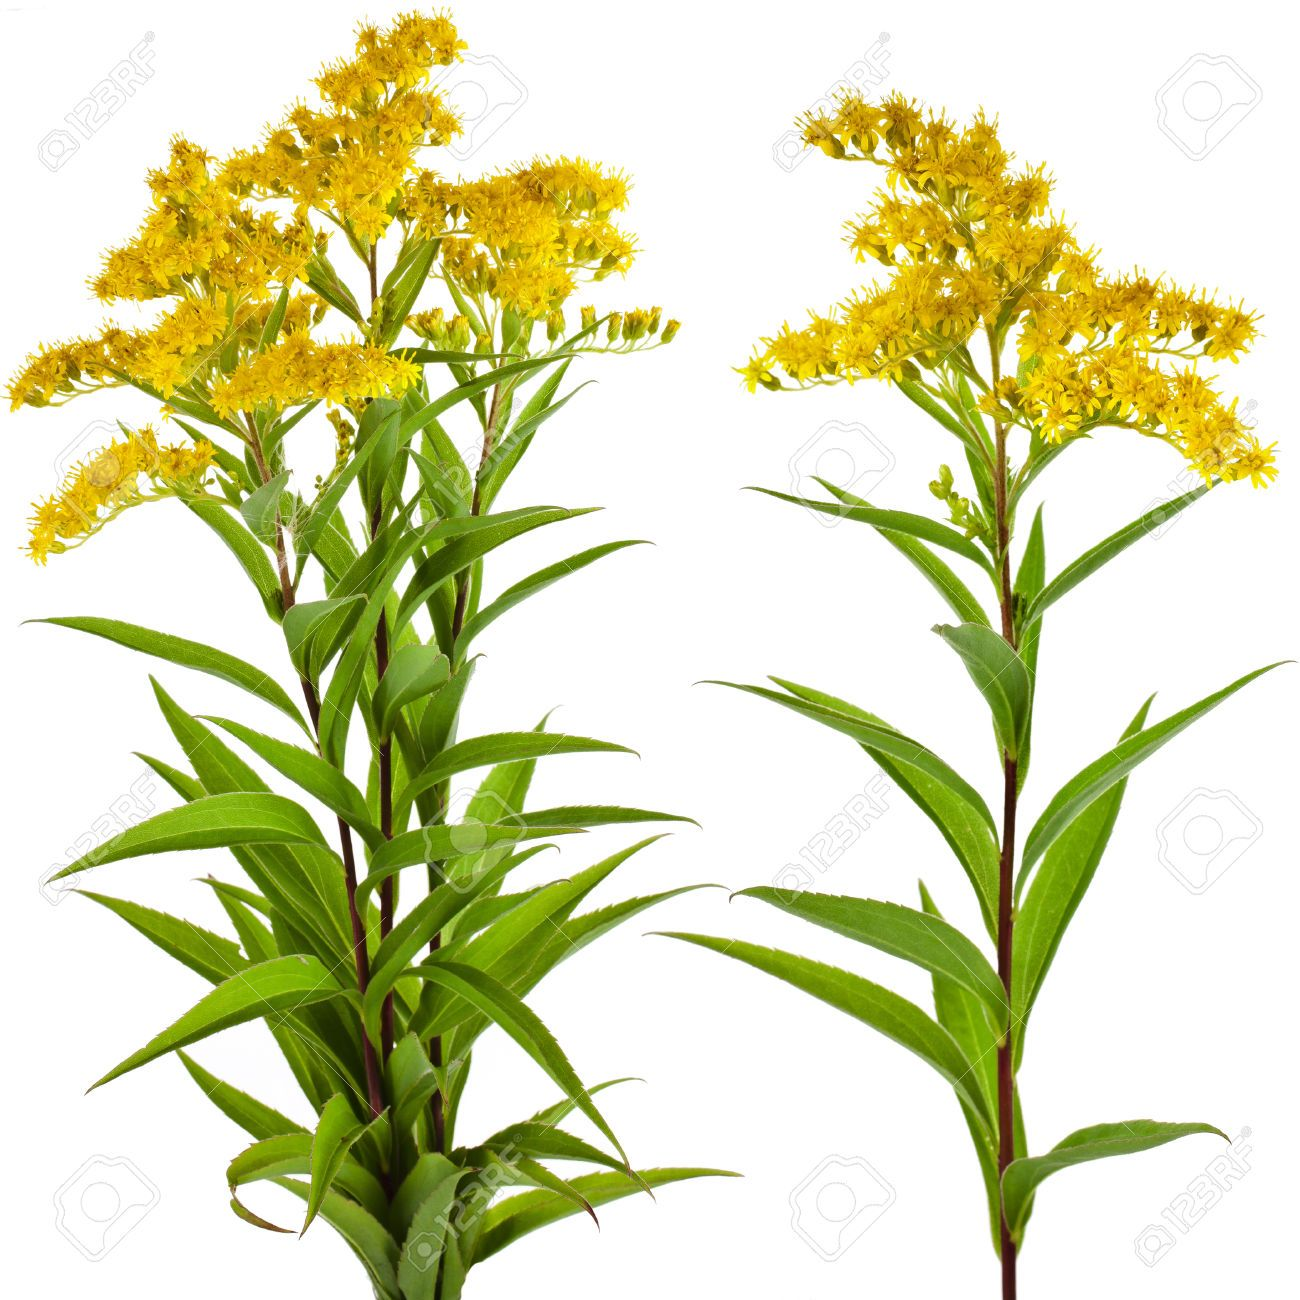 Types Of Flower Arrangements Solidago Images Stock Pictures Royalty Free Solidago